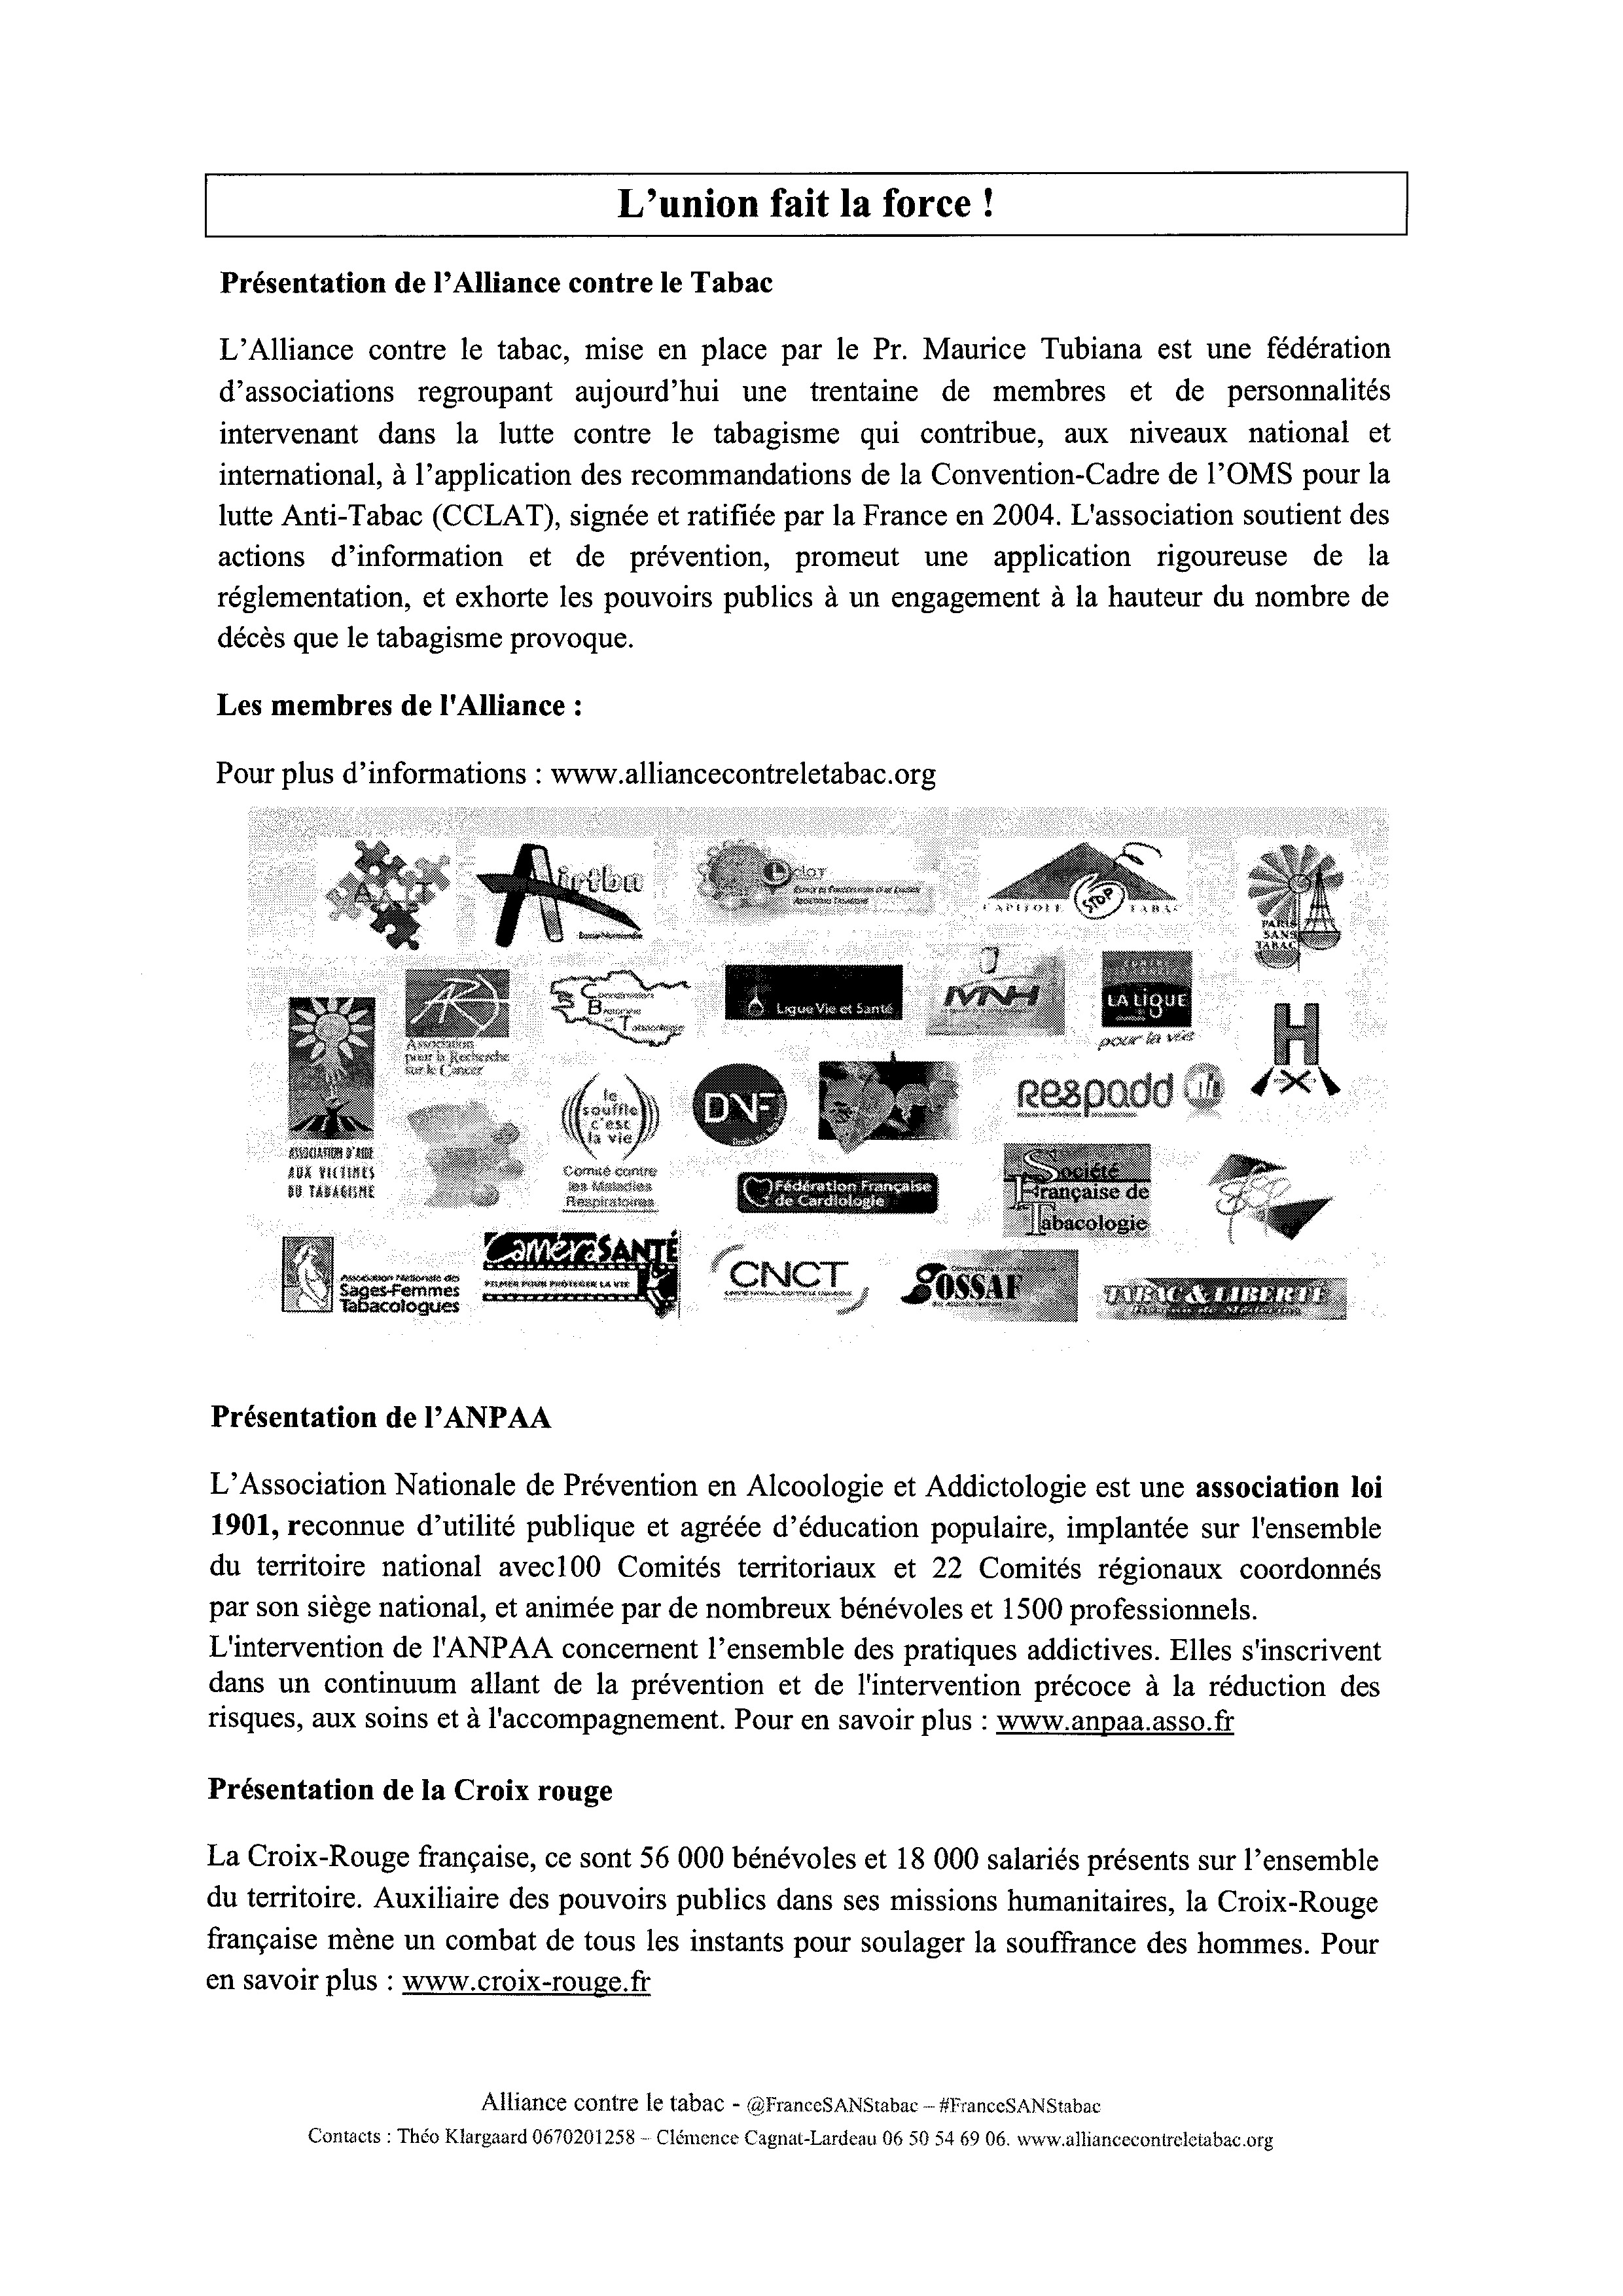 Alliance-DP_dossier-point-presse-lycees-sans-tabac-27avr2016_Page_05.jpg